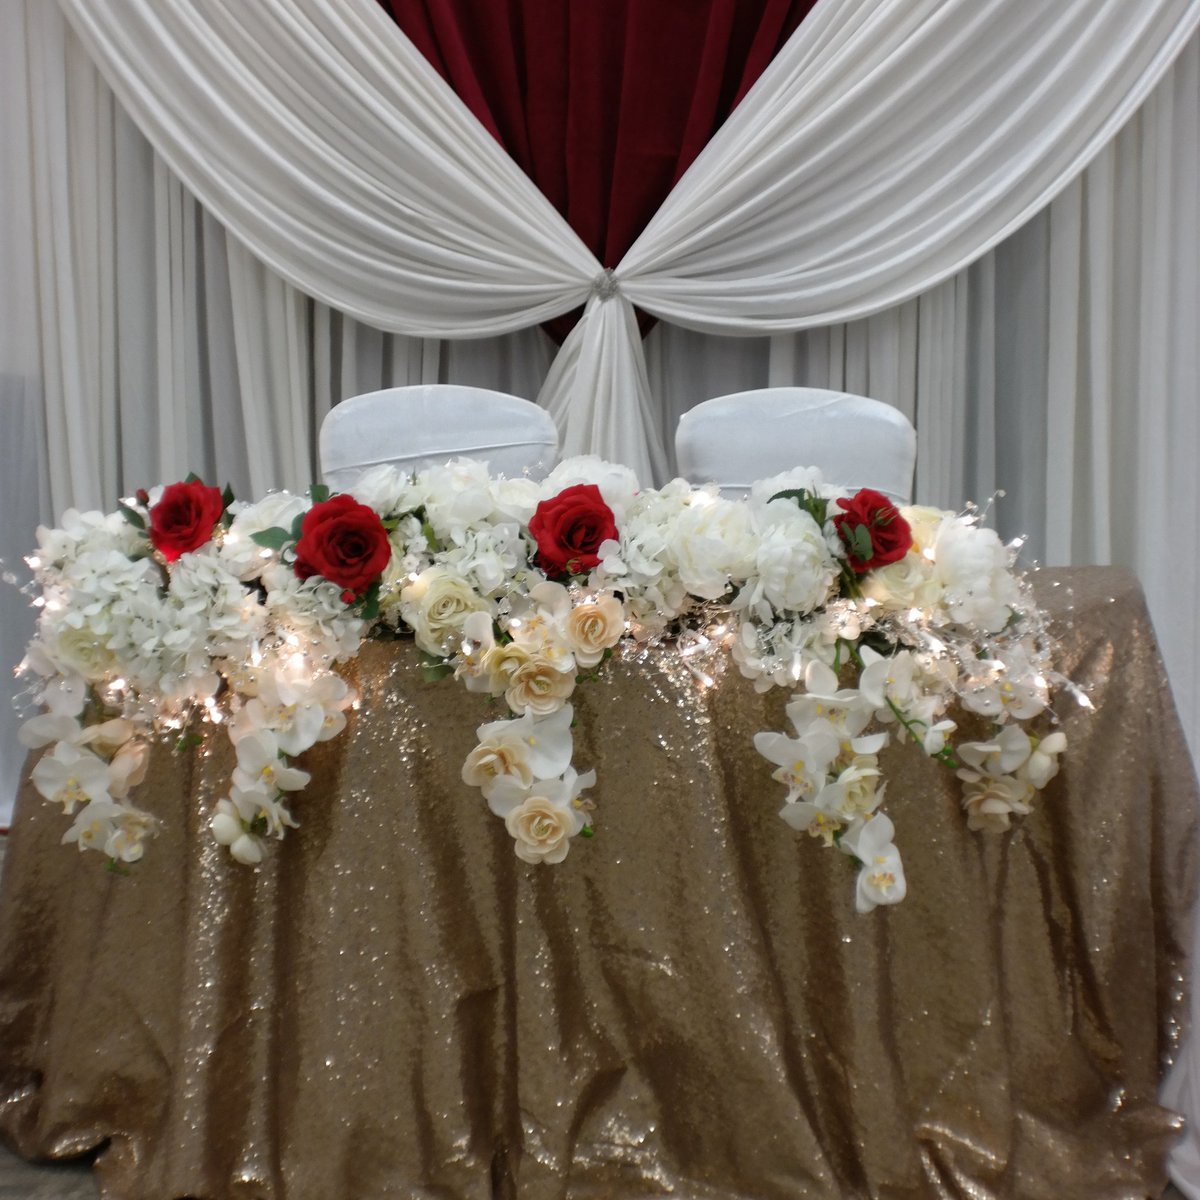 To Tour Our Venue Today Visit Nampaciviccenter Or Call 208 468 5500 For More Information Nampa Idaho Weddings